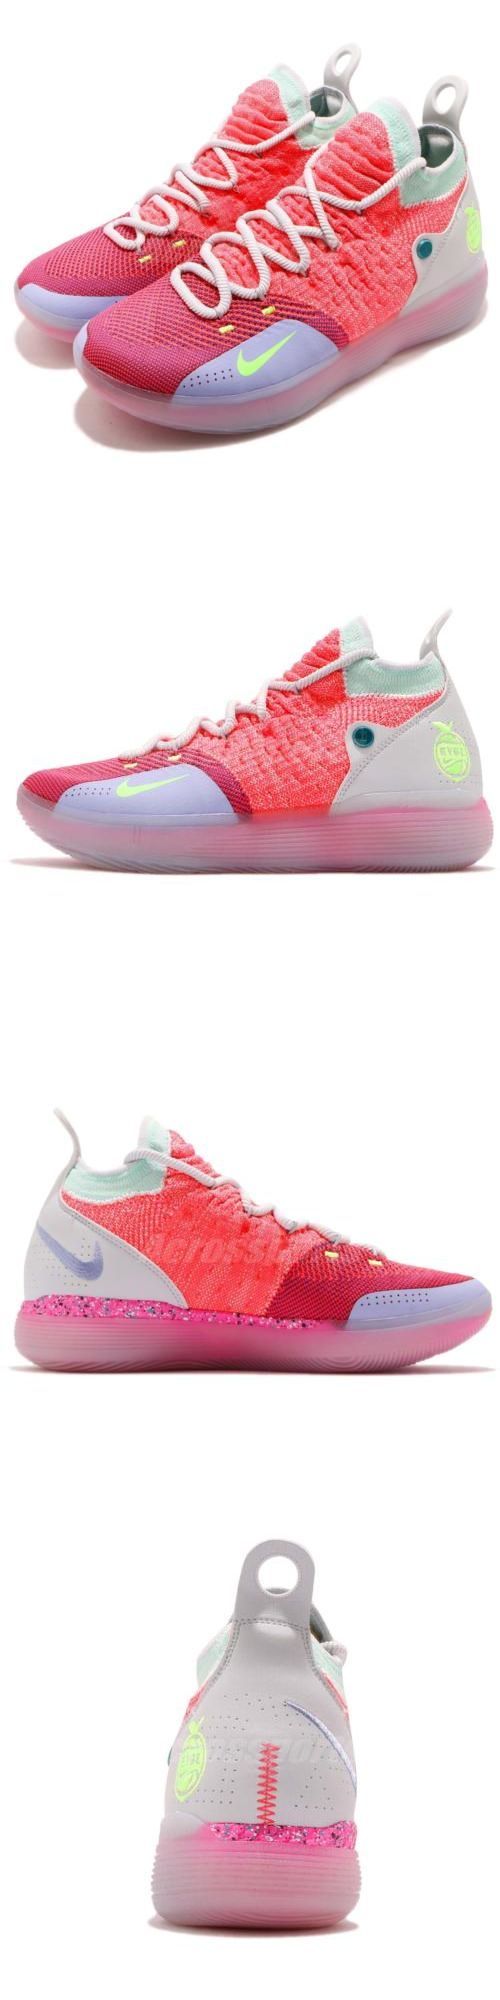 online store 8f900 418ae Clothing Shoes and Accessories 158963 Nike Zoom Kd 11 Ep Xi Eybl Peach Jam  Hot Punch Kevin Durant Men Shoes A…  Clothing Shoes and Accessories 158963  in ...